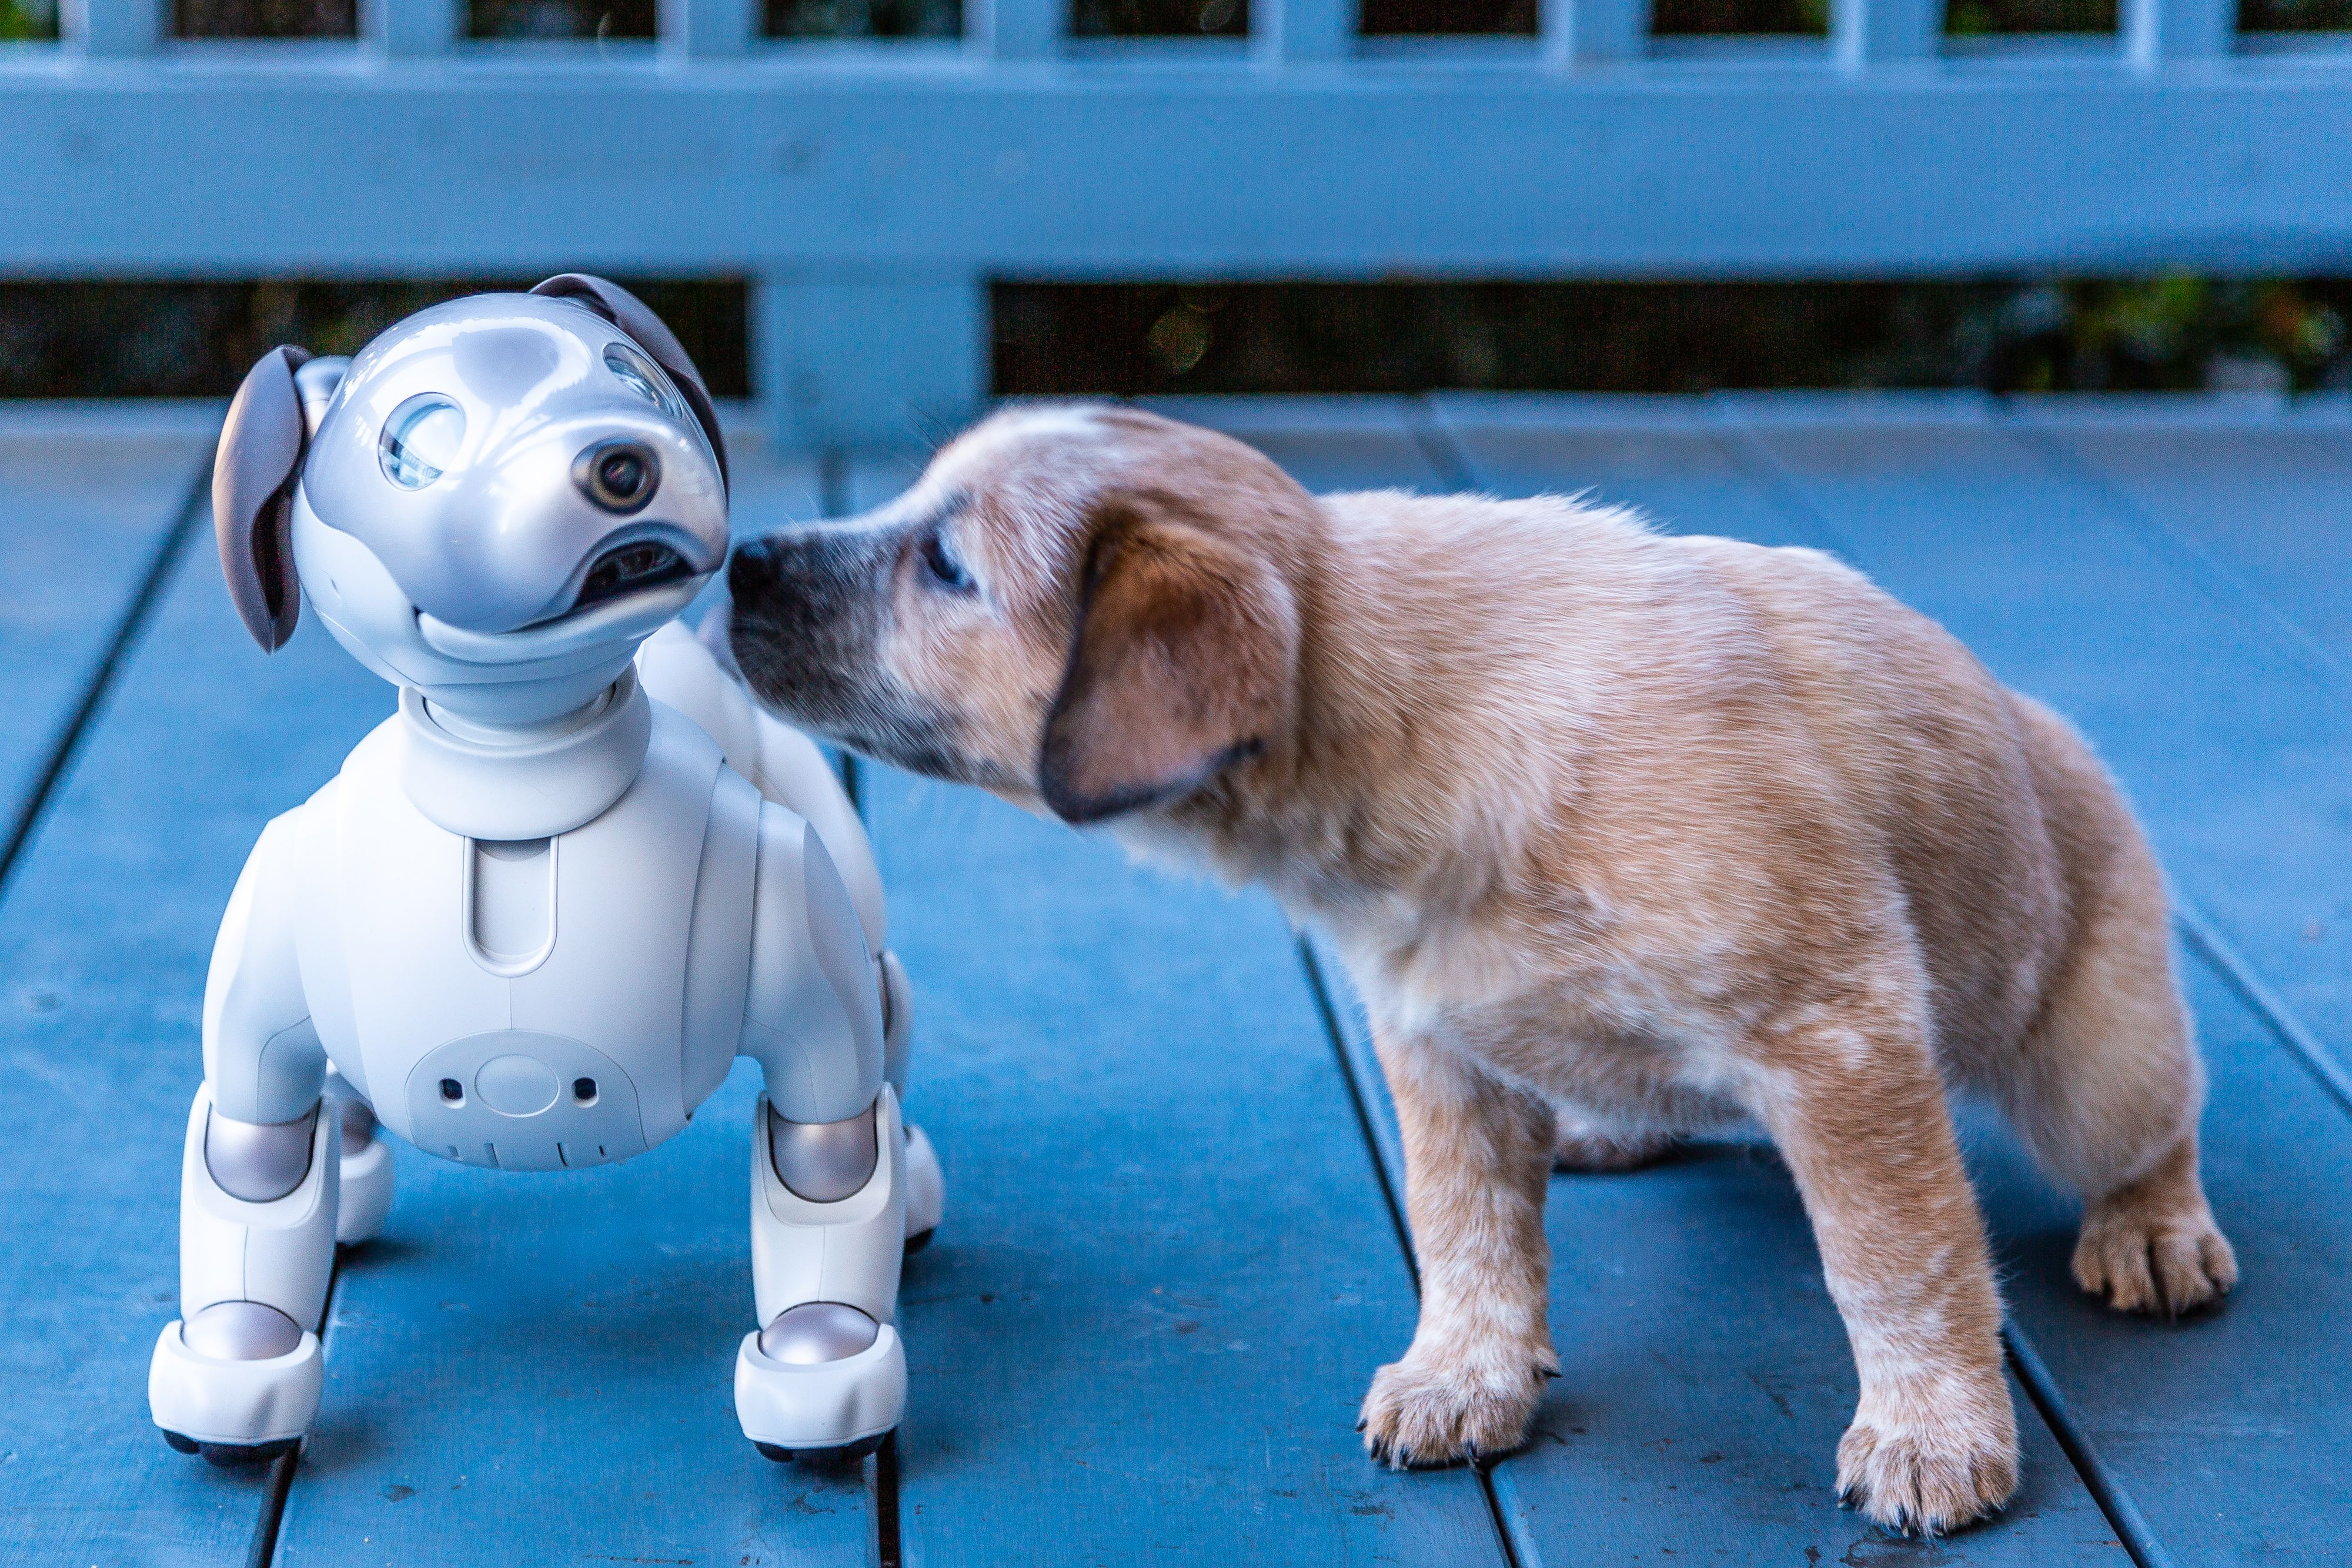 Sonys Robot Dog Aibo Is Designed To Make You Feel Puppy